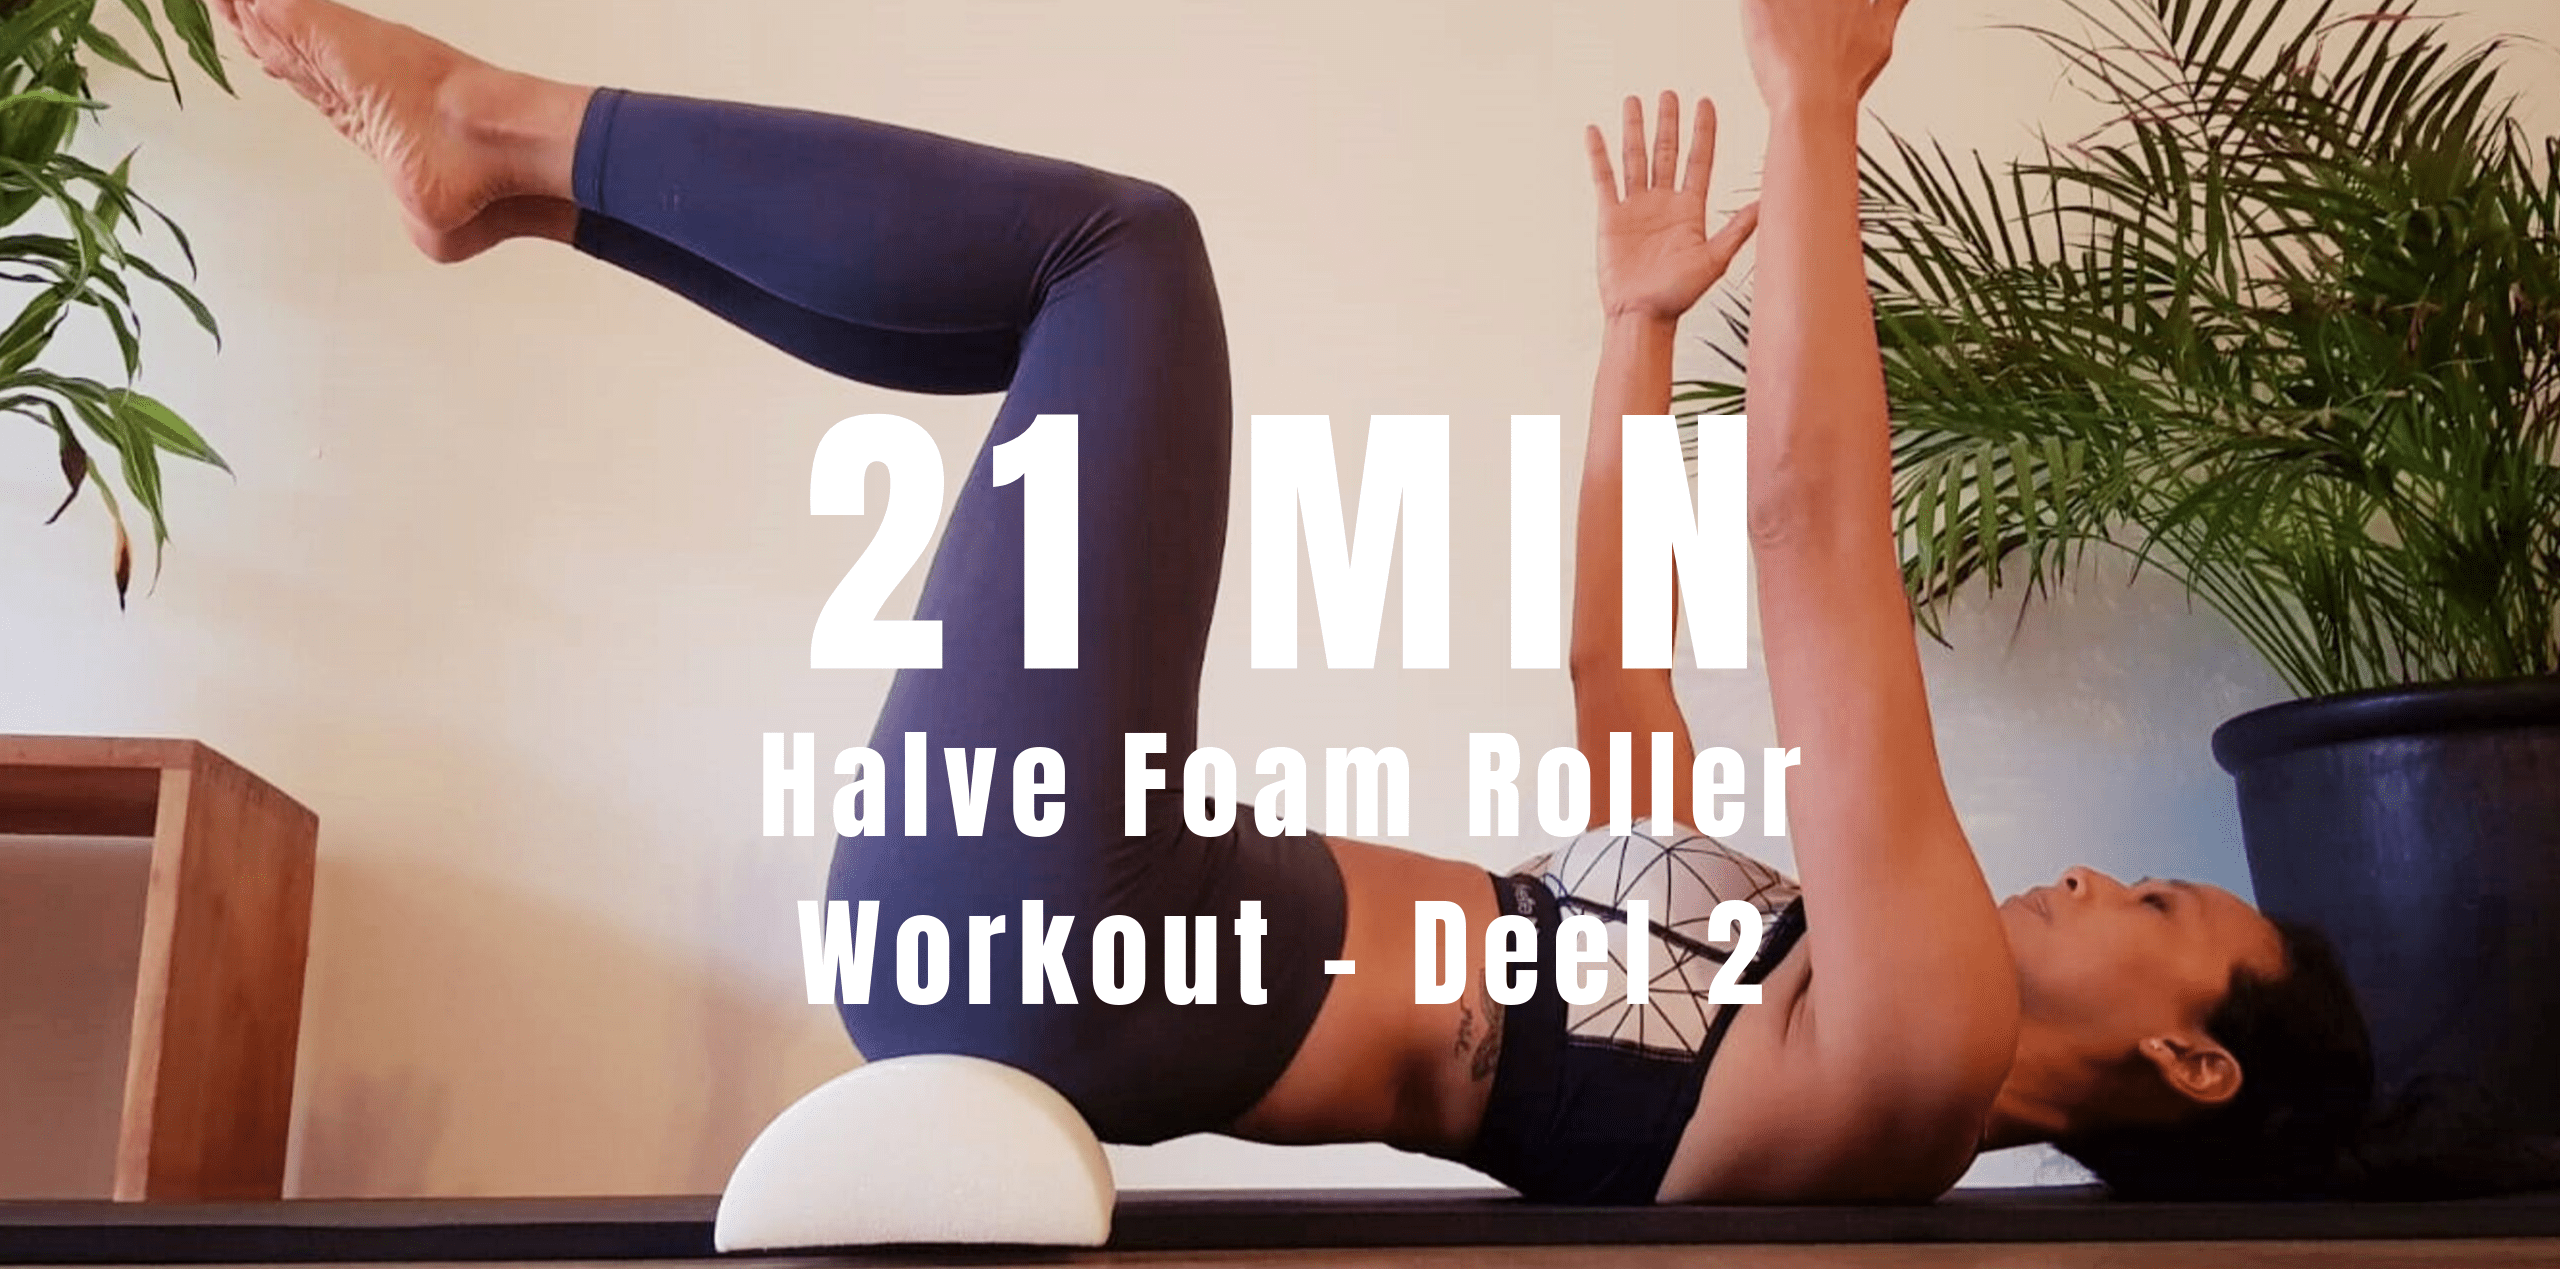 Halve foam roller workout | strongbody.nl